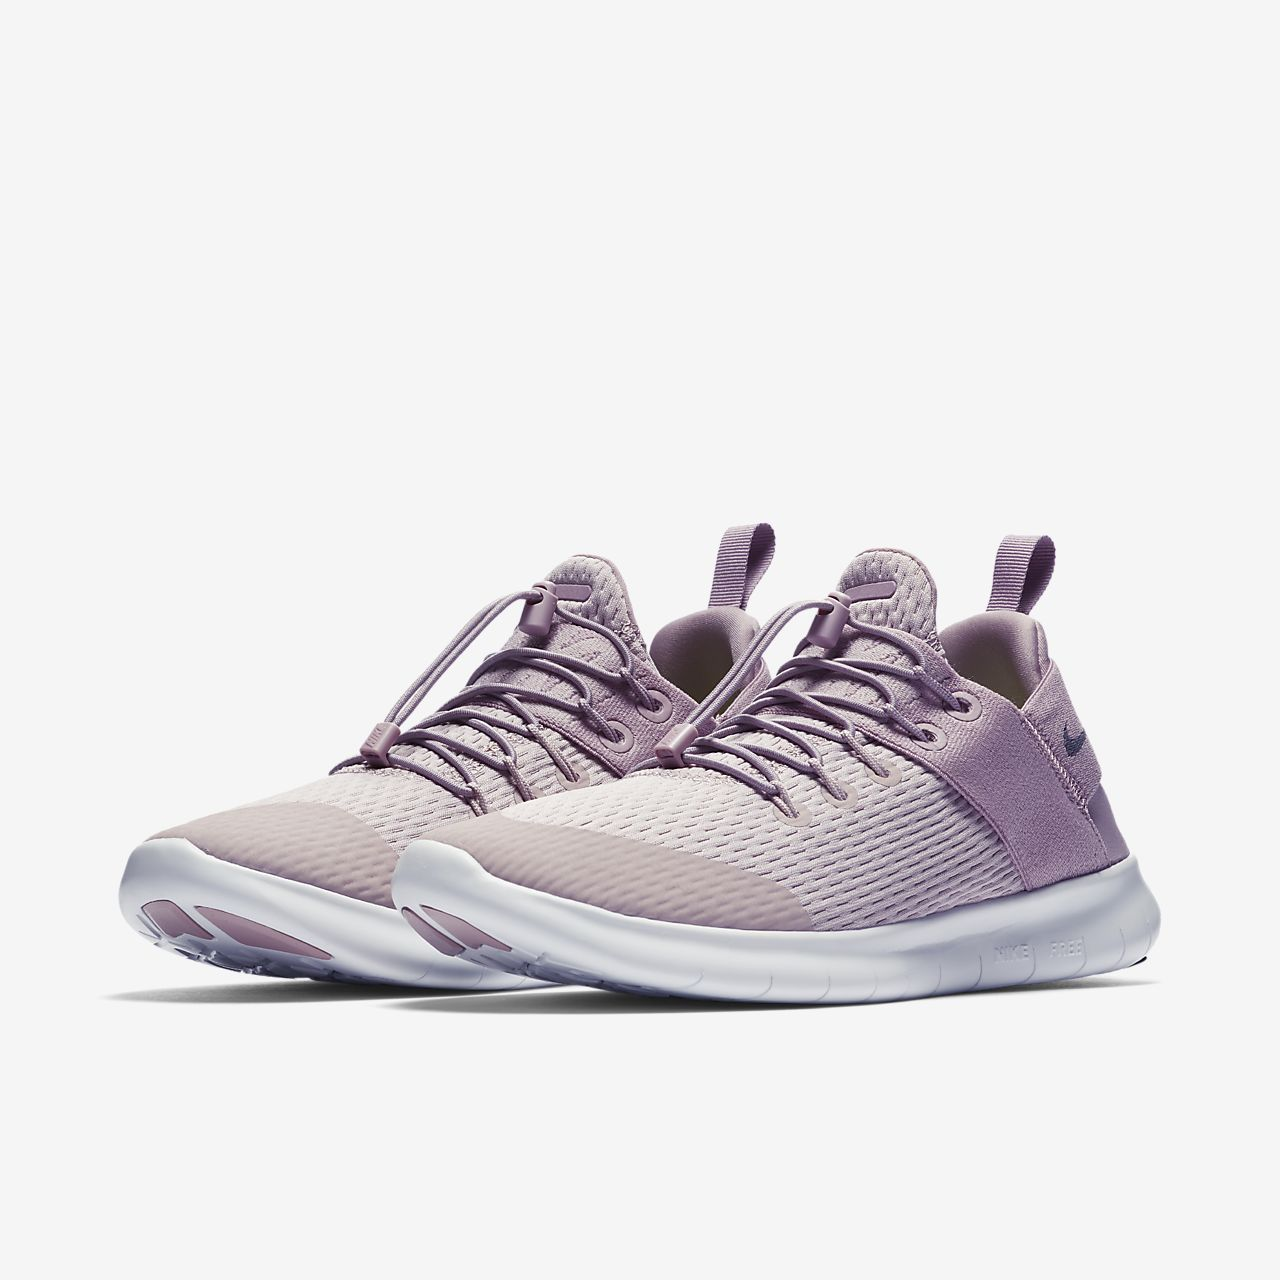 ... Nike Free RN Commuter 2017 Women's Running Shoe